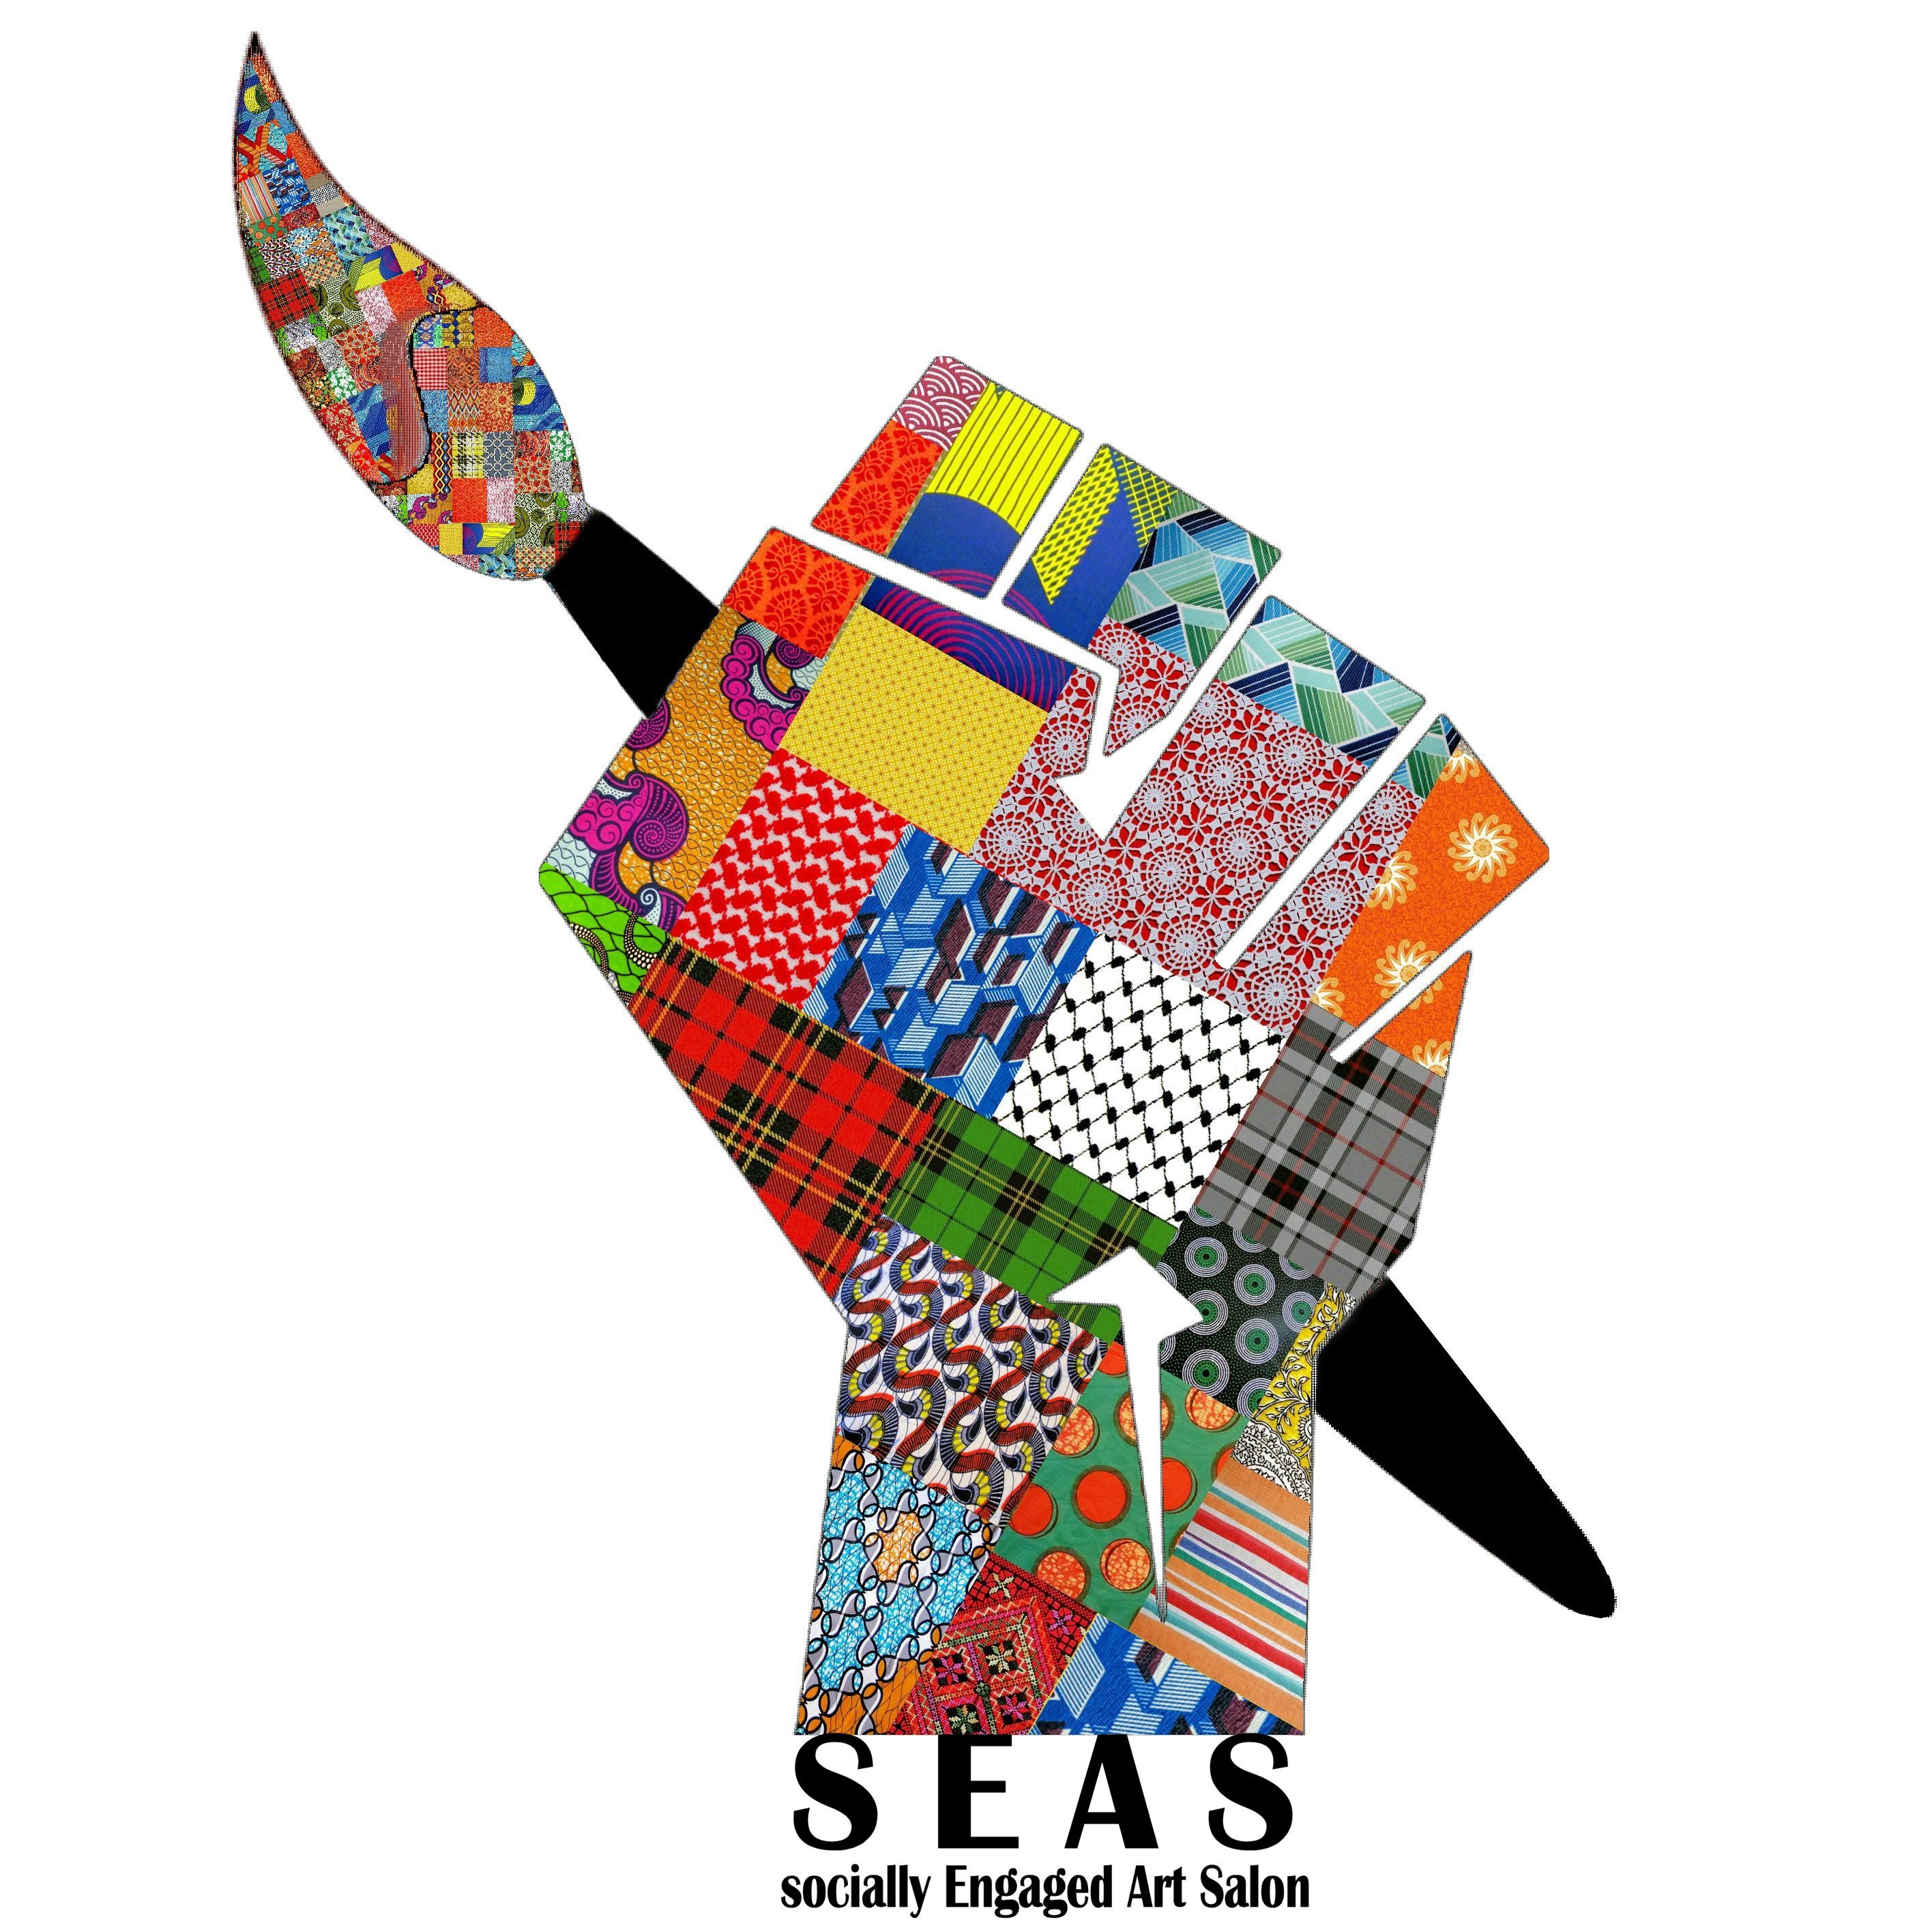 SEAS – Socially Engaged Art Salon